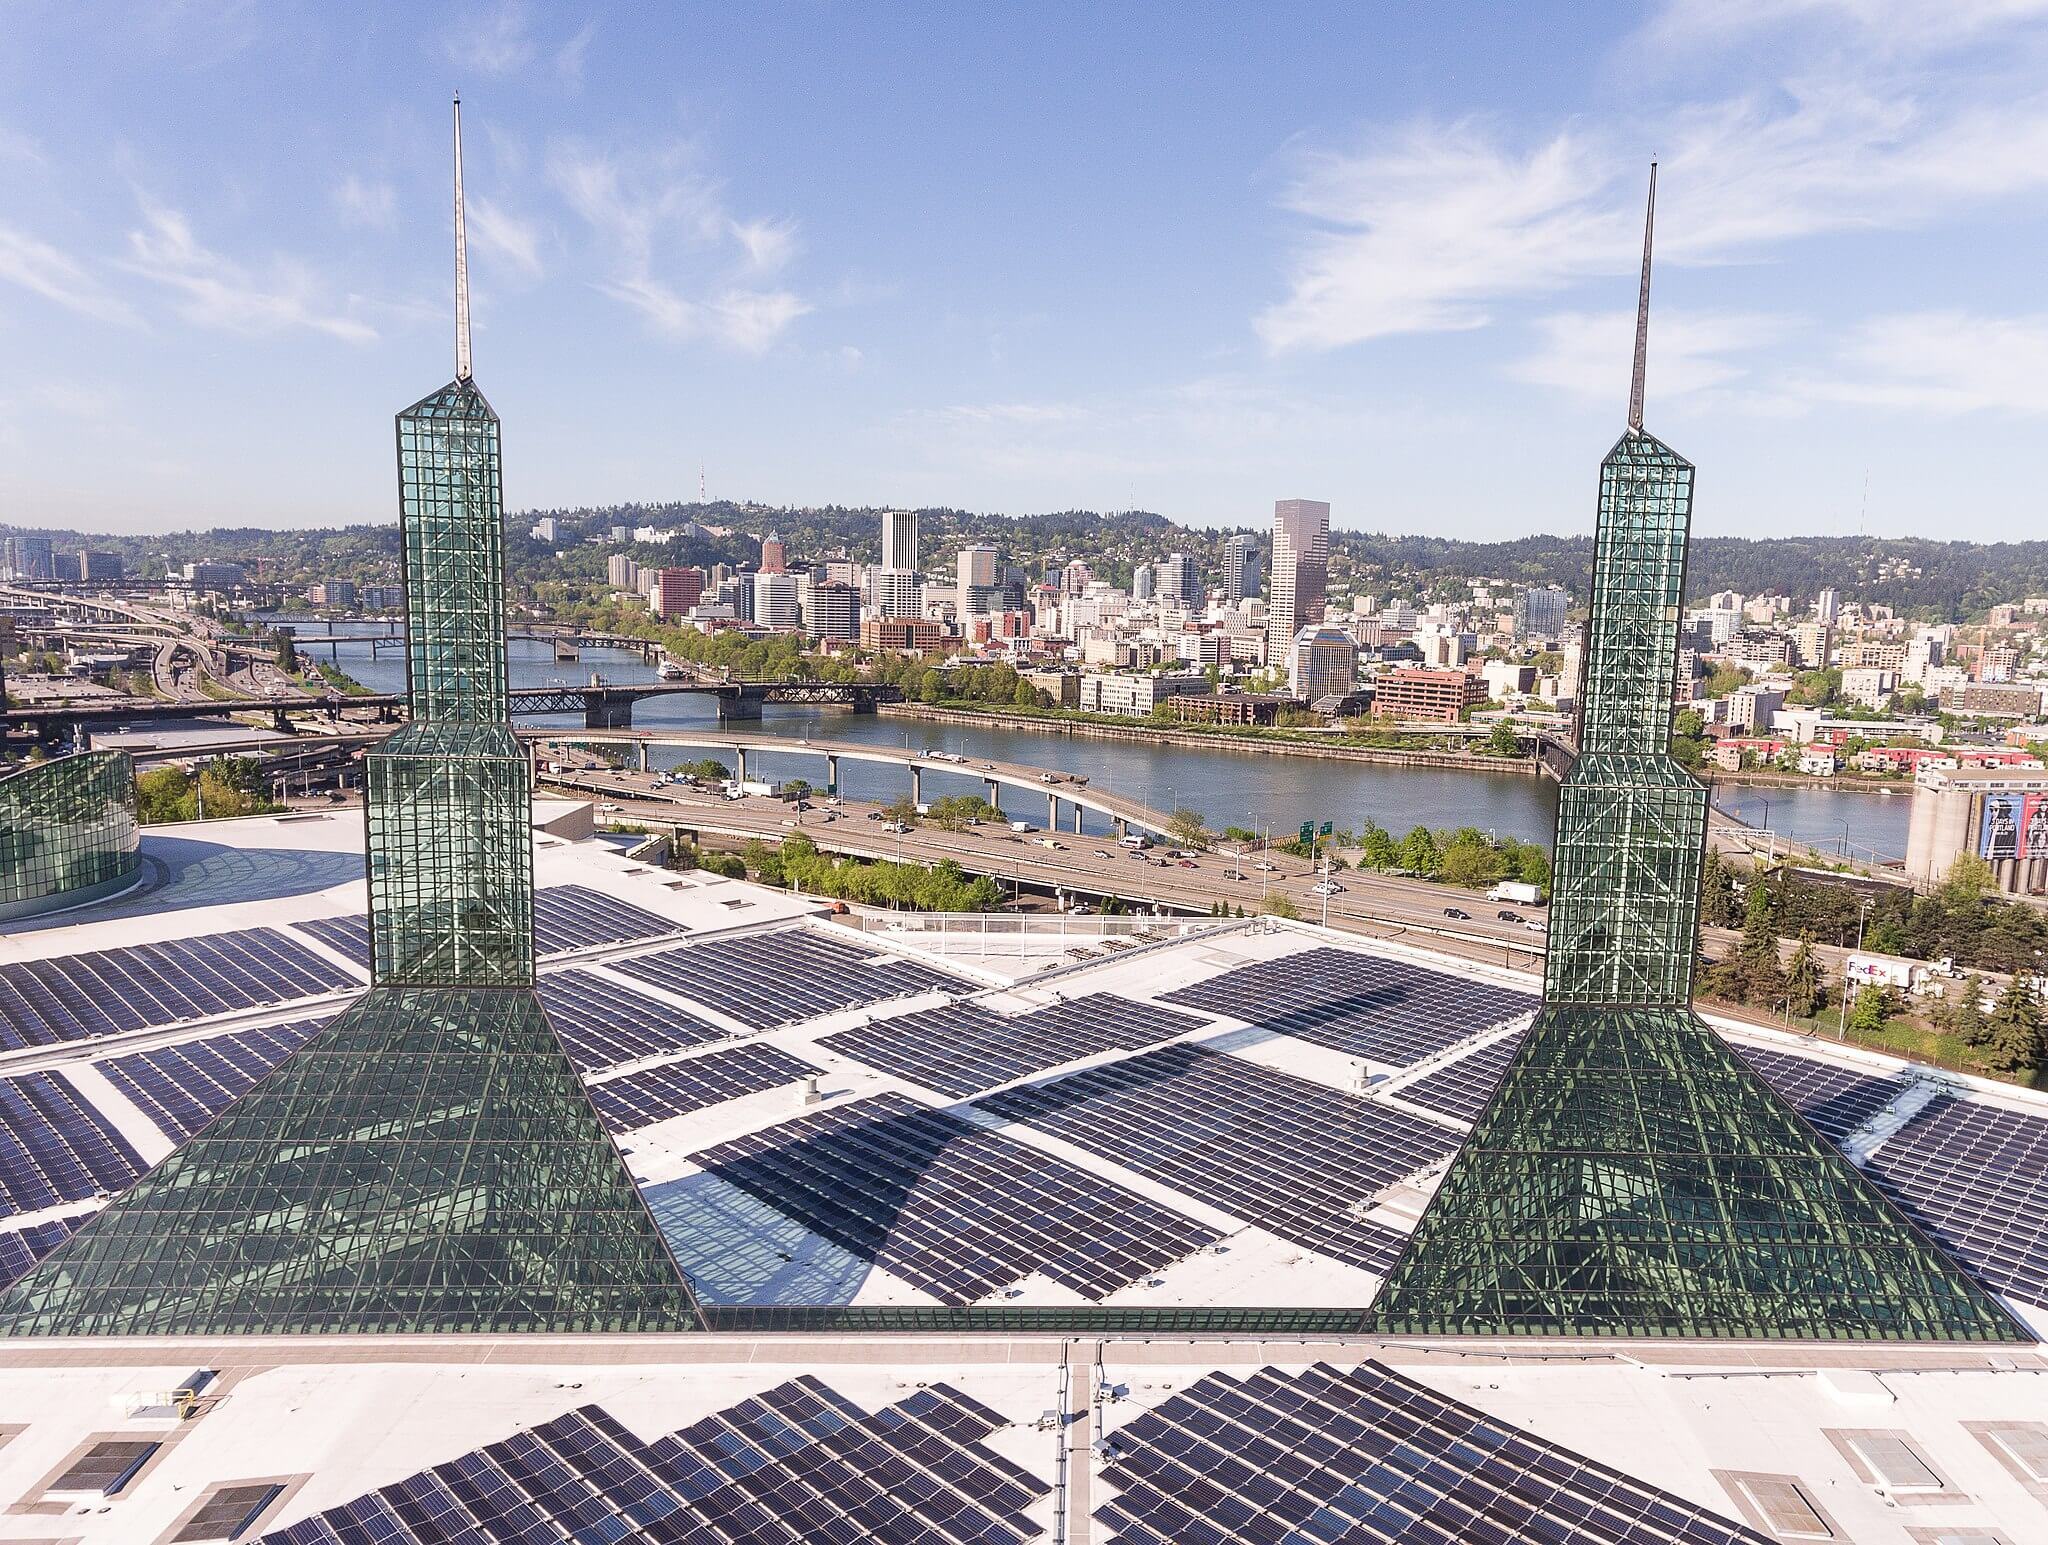 An aerial shot of solar panels. In the background, a city skyline.